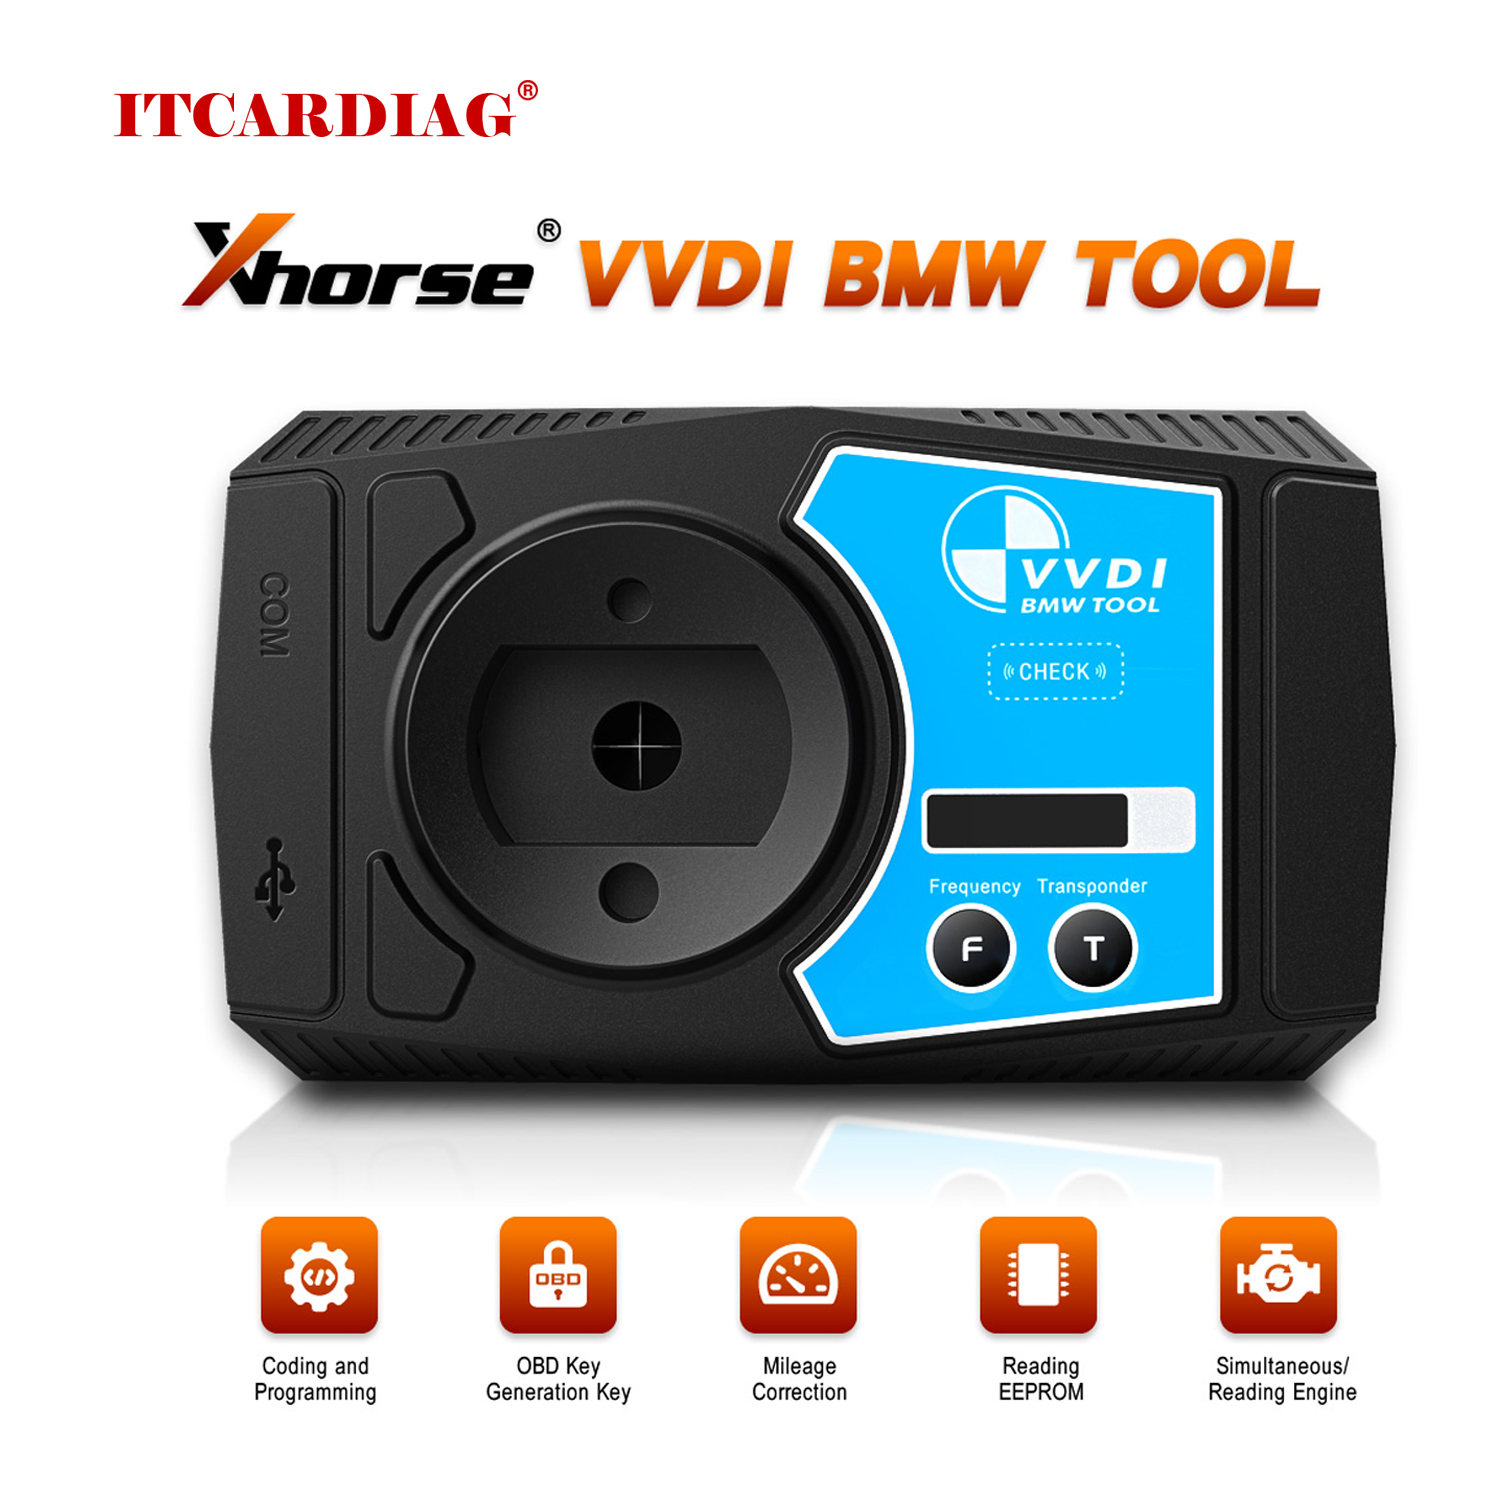 Xhorse VVDI For BMW V1.4.6 Car Key Programmer E/F/G Chassis Diagnostic Coding and Programming Tool Covers Function of VVDI 2